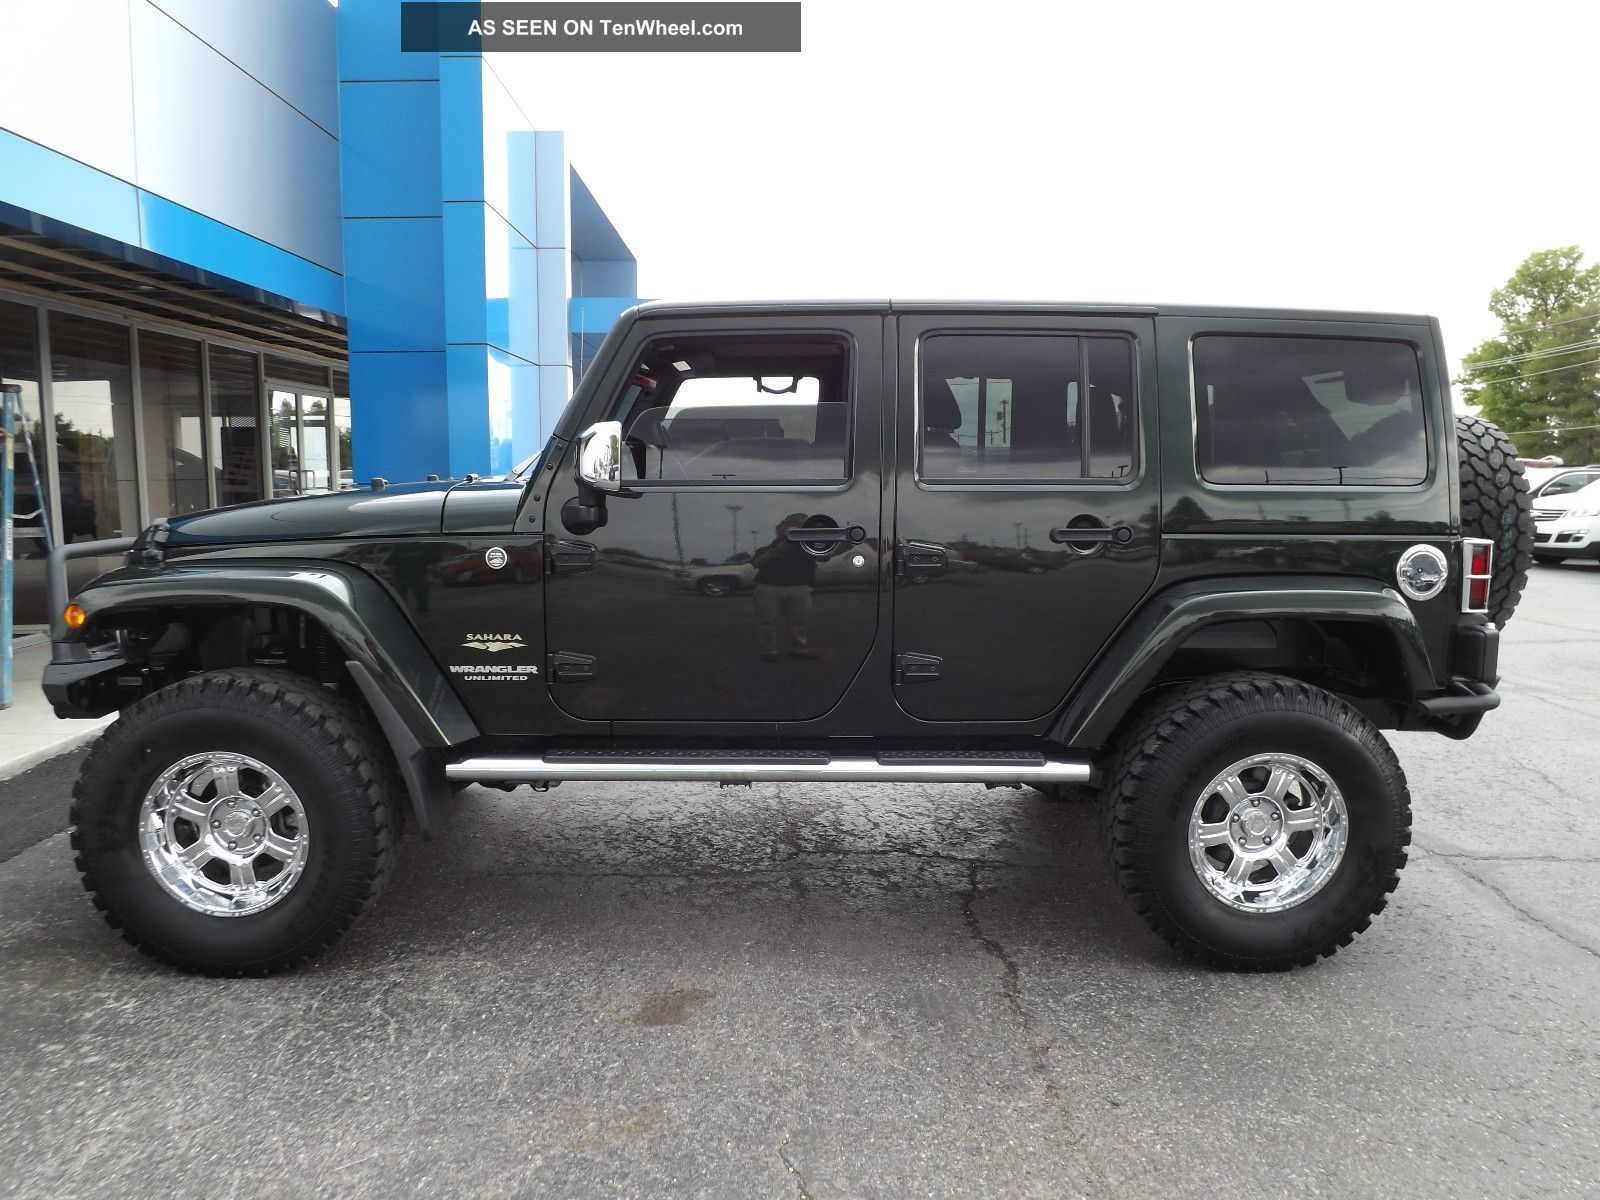 Jeep Wrangler 4 Door LiftedJeep Wrangler 4 Door Lifted